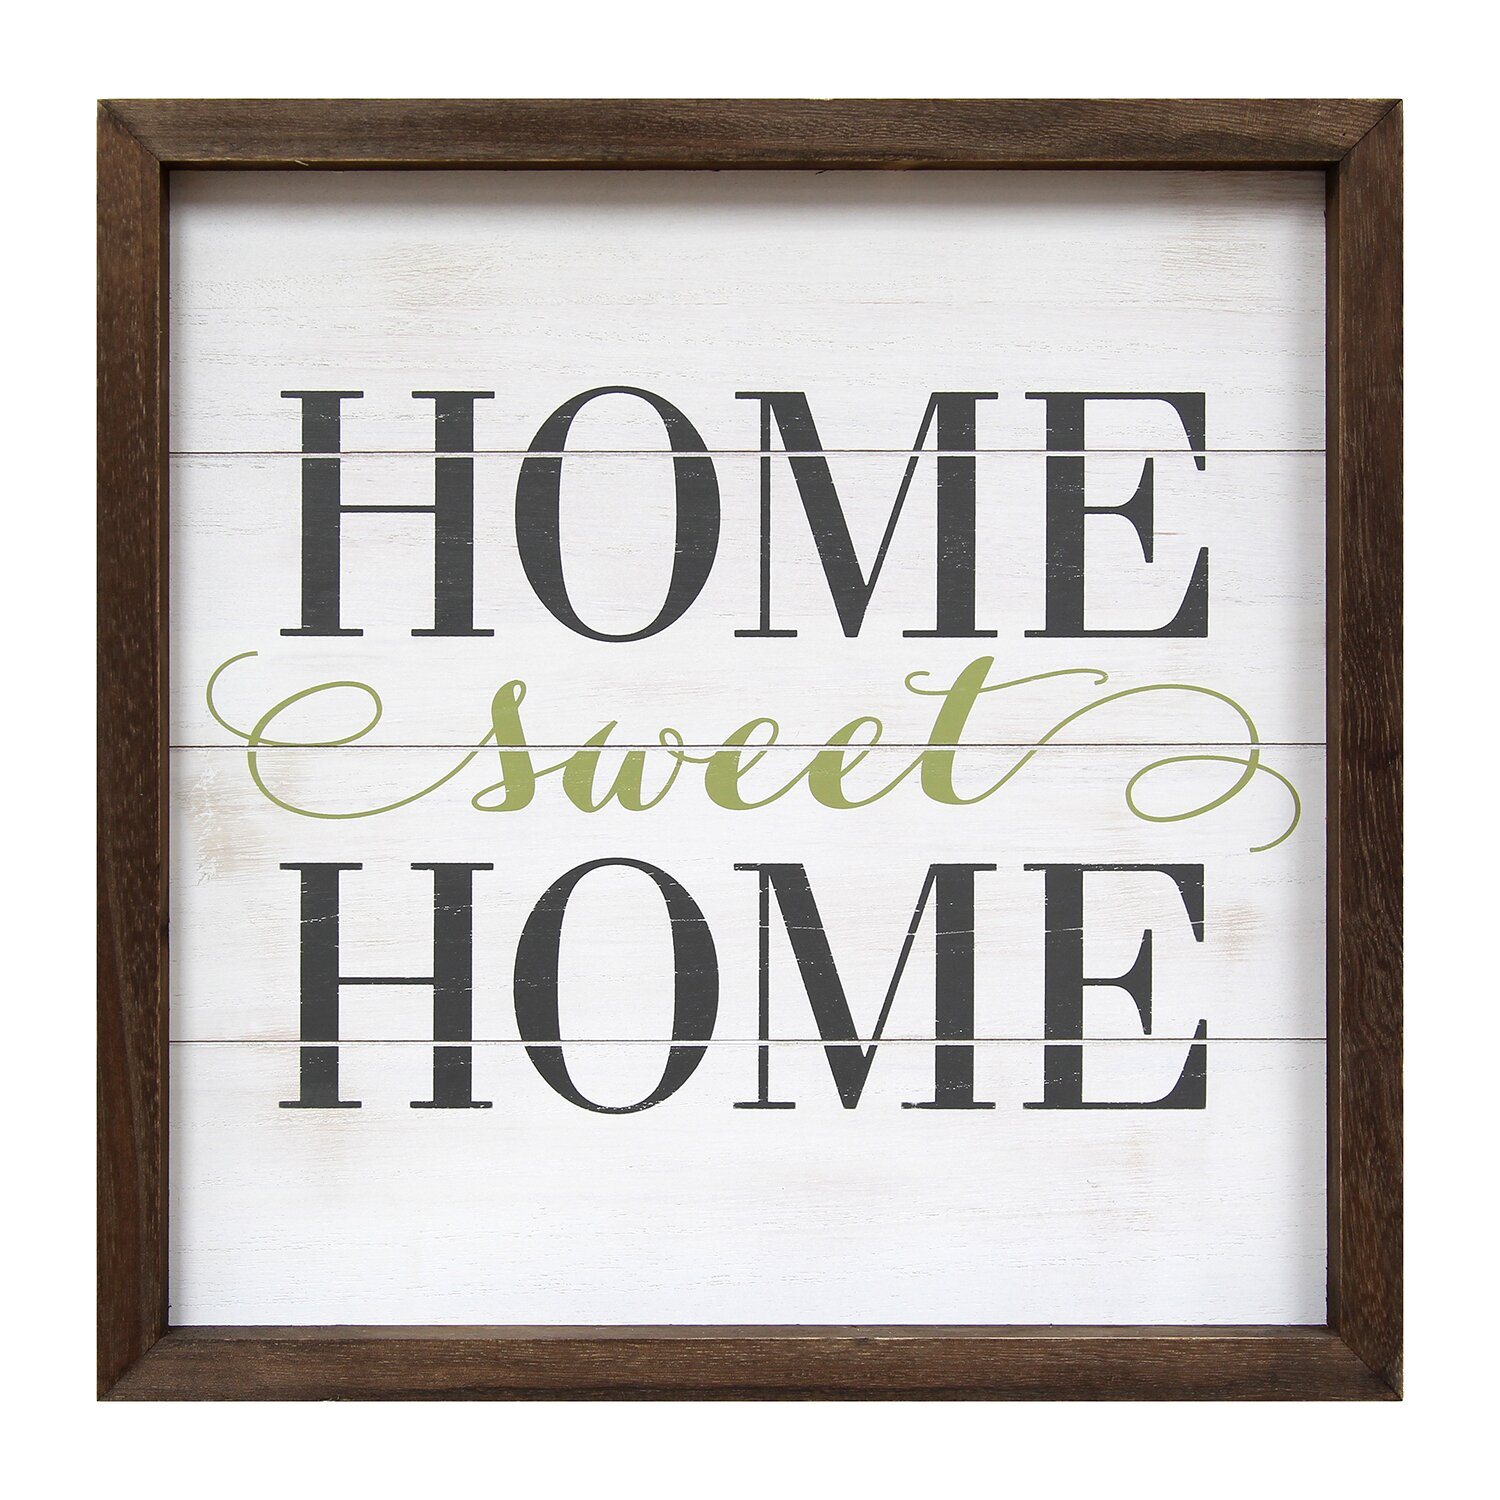 stratton home decor home sweet home framed textual art wayfair. Black Bedroom Furniture Sets. Home Design Ideas